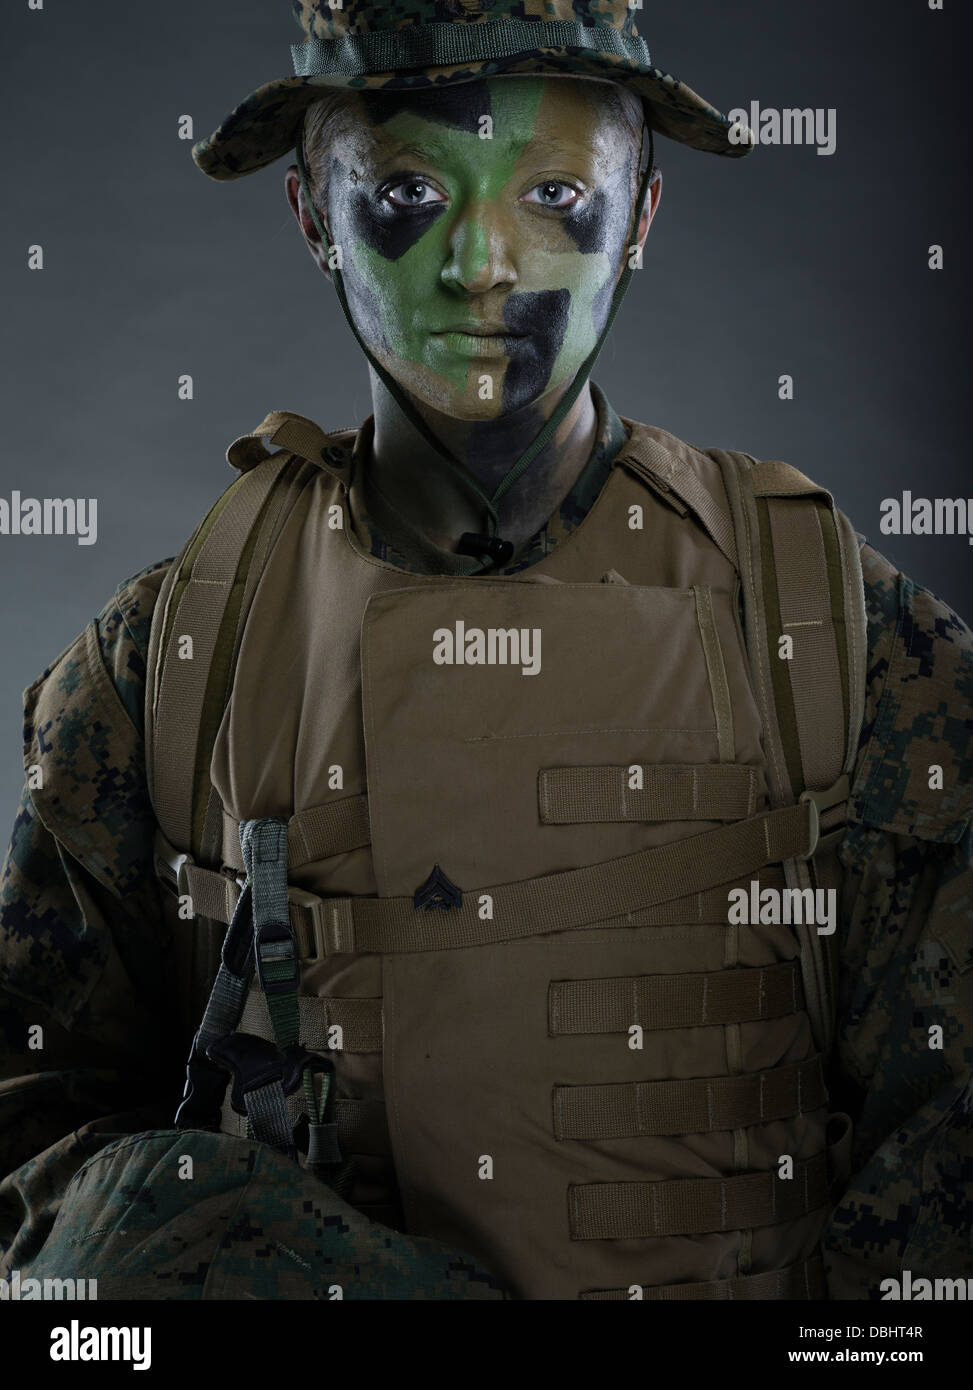 Portrait Of Female United States Marine Corps Soldier In